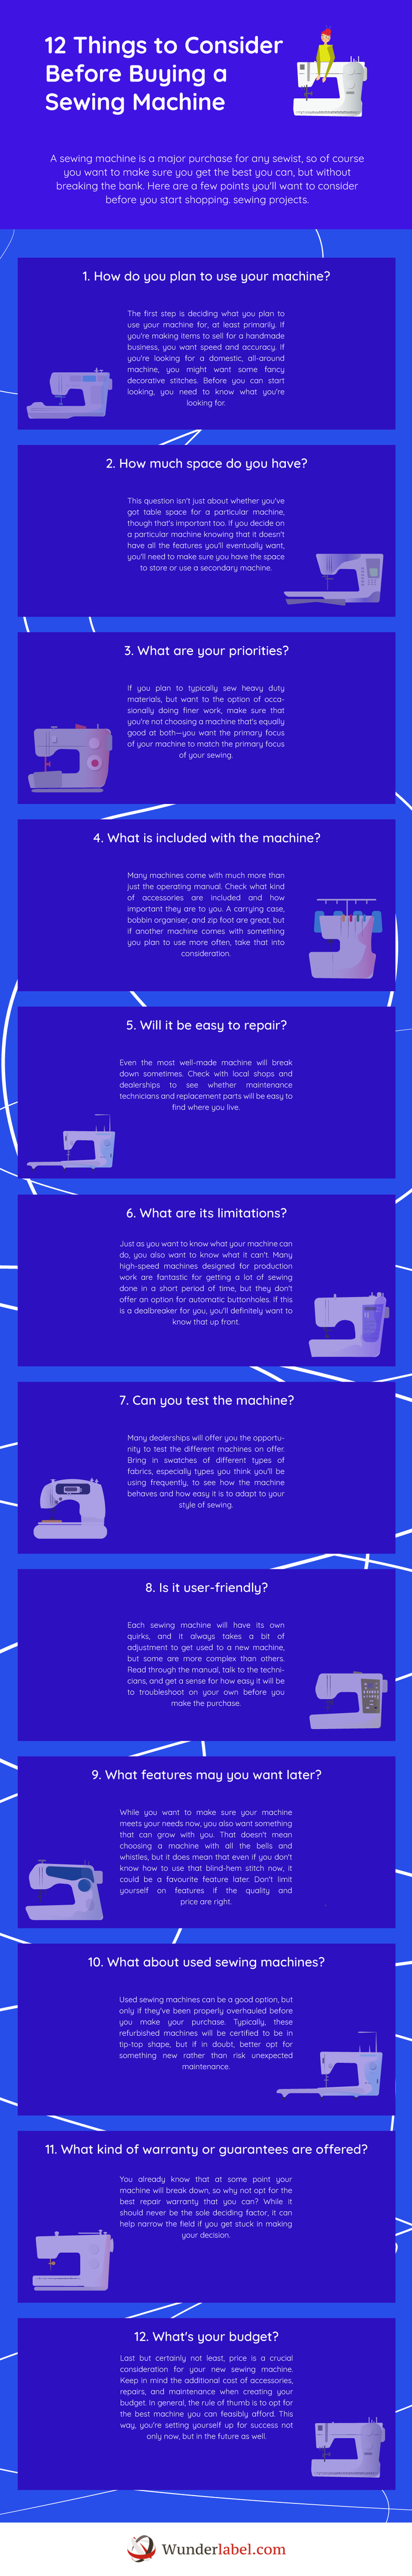 12 Things to Consider Before Buying a Sewing Machine [Infographic]